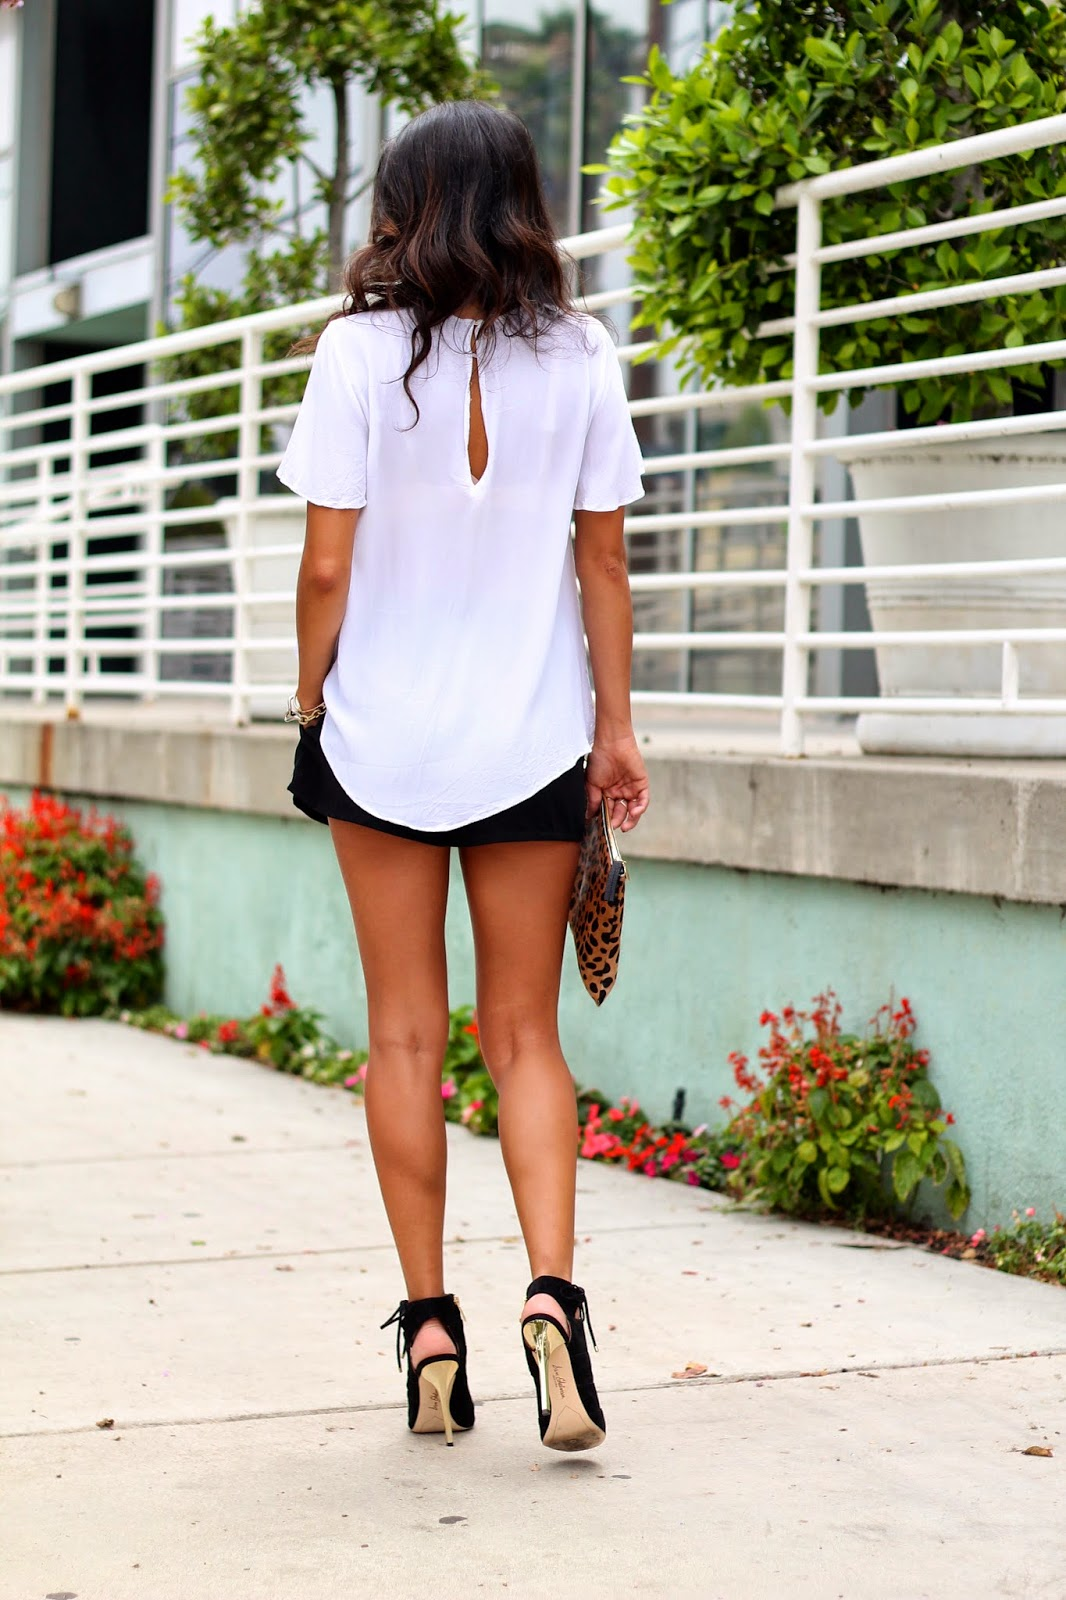 sam edelman heels, clare vivier clutch, how to wear heels and shorts, white black outfit